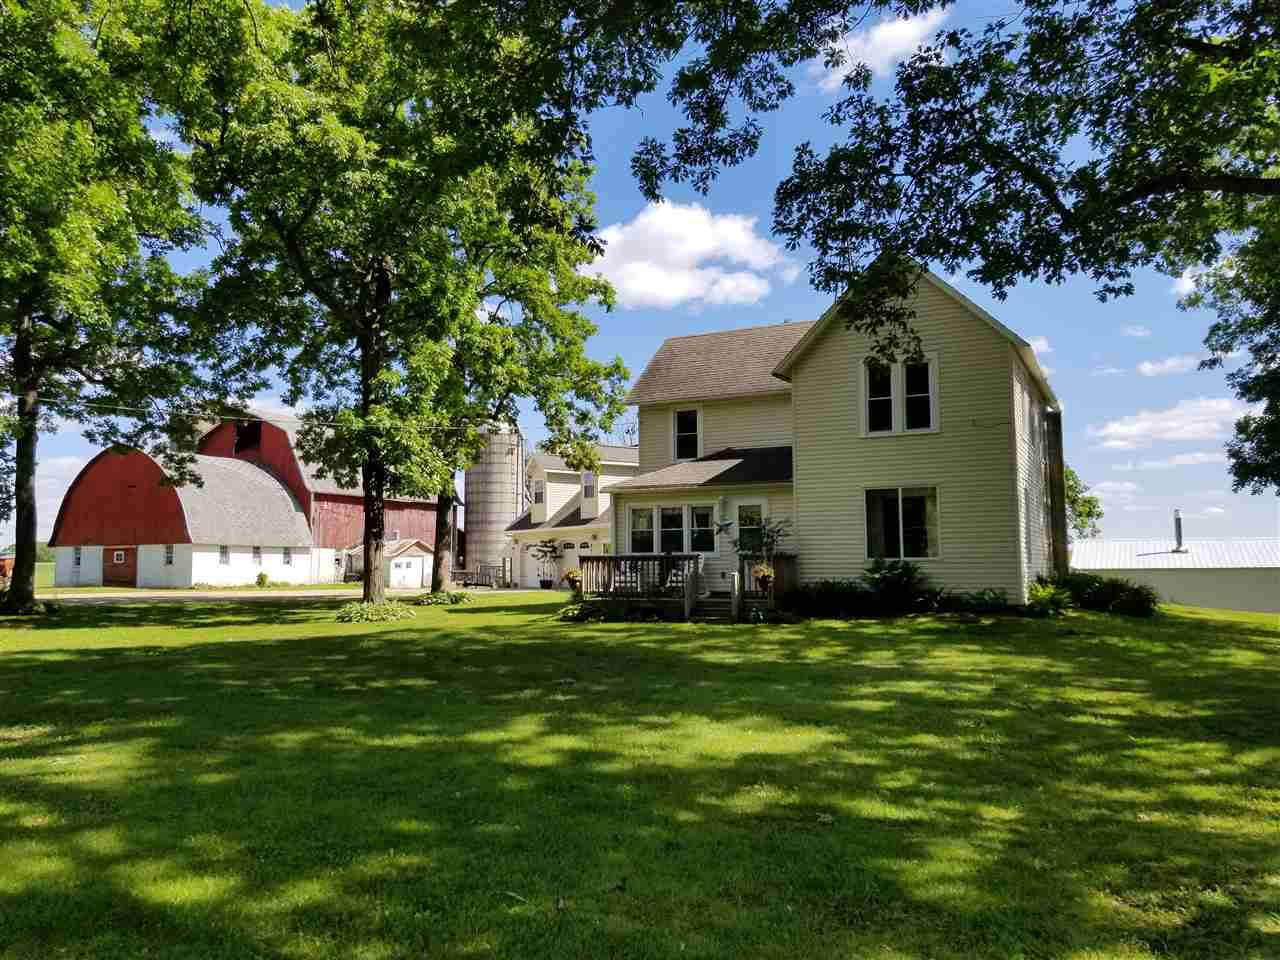 MUST SEE TO APPRECIATE!!!!  Charming farmette with just under 5 acres and only one mile East of Wis. Dells.  Homeowner has taken immaculate care of this home for 24 years.  Recently updated electricity, plumbing and septic while still keeping much of the original details. Great place to raise a few horses, cows, chickens or children! Pasture is already fenced in!  A Central Boiler Wood Stove efficiently heats the entire home and garage with LP as an alternative system. 900 sq ft garage/entertainment area with an upstairs living room and bedroom.  Call Lisa today to look at this unique property! 608-432-1069